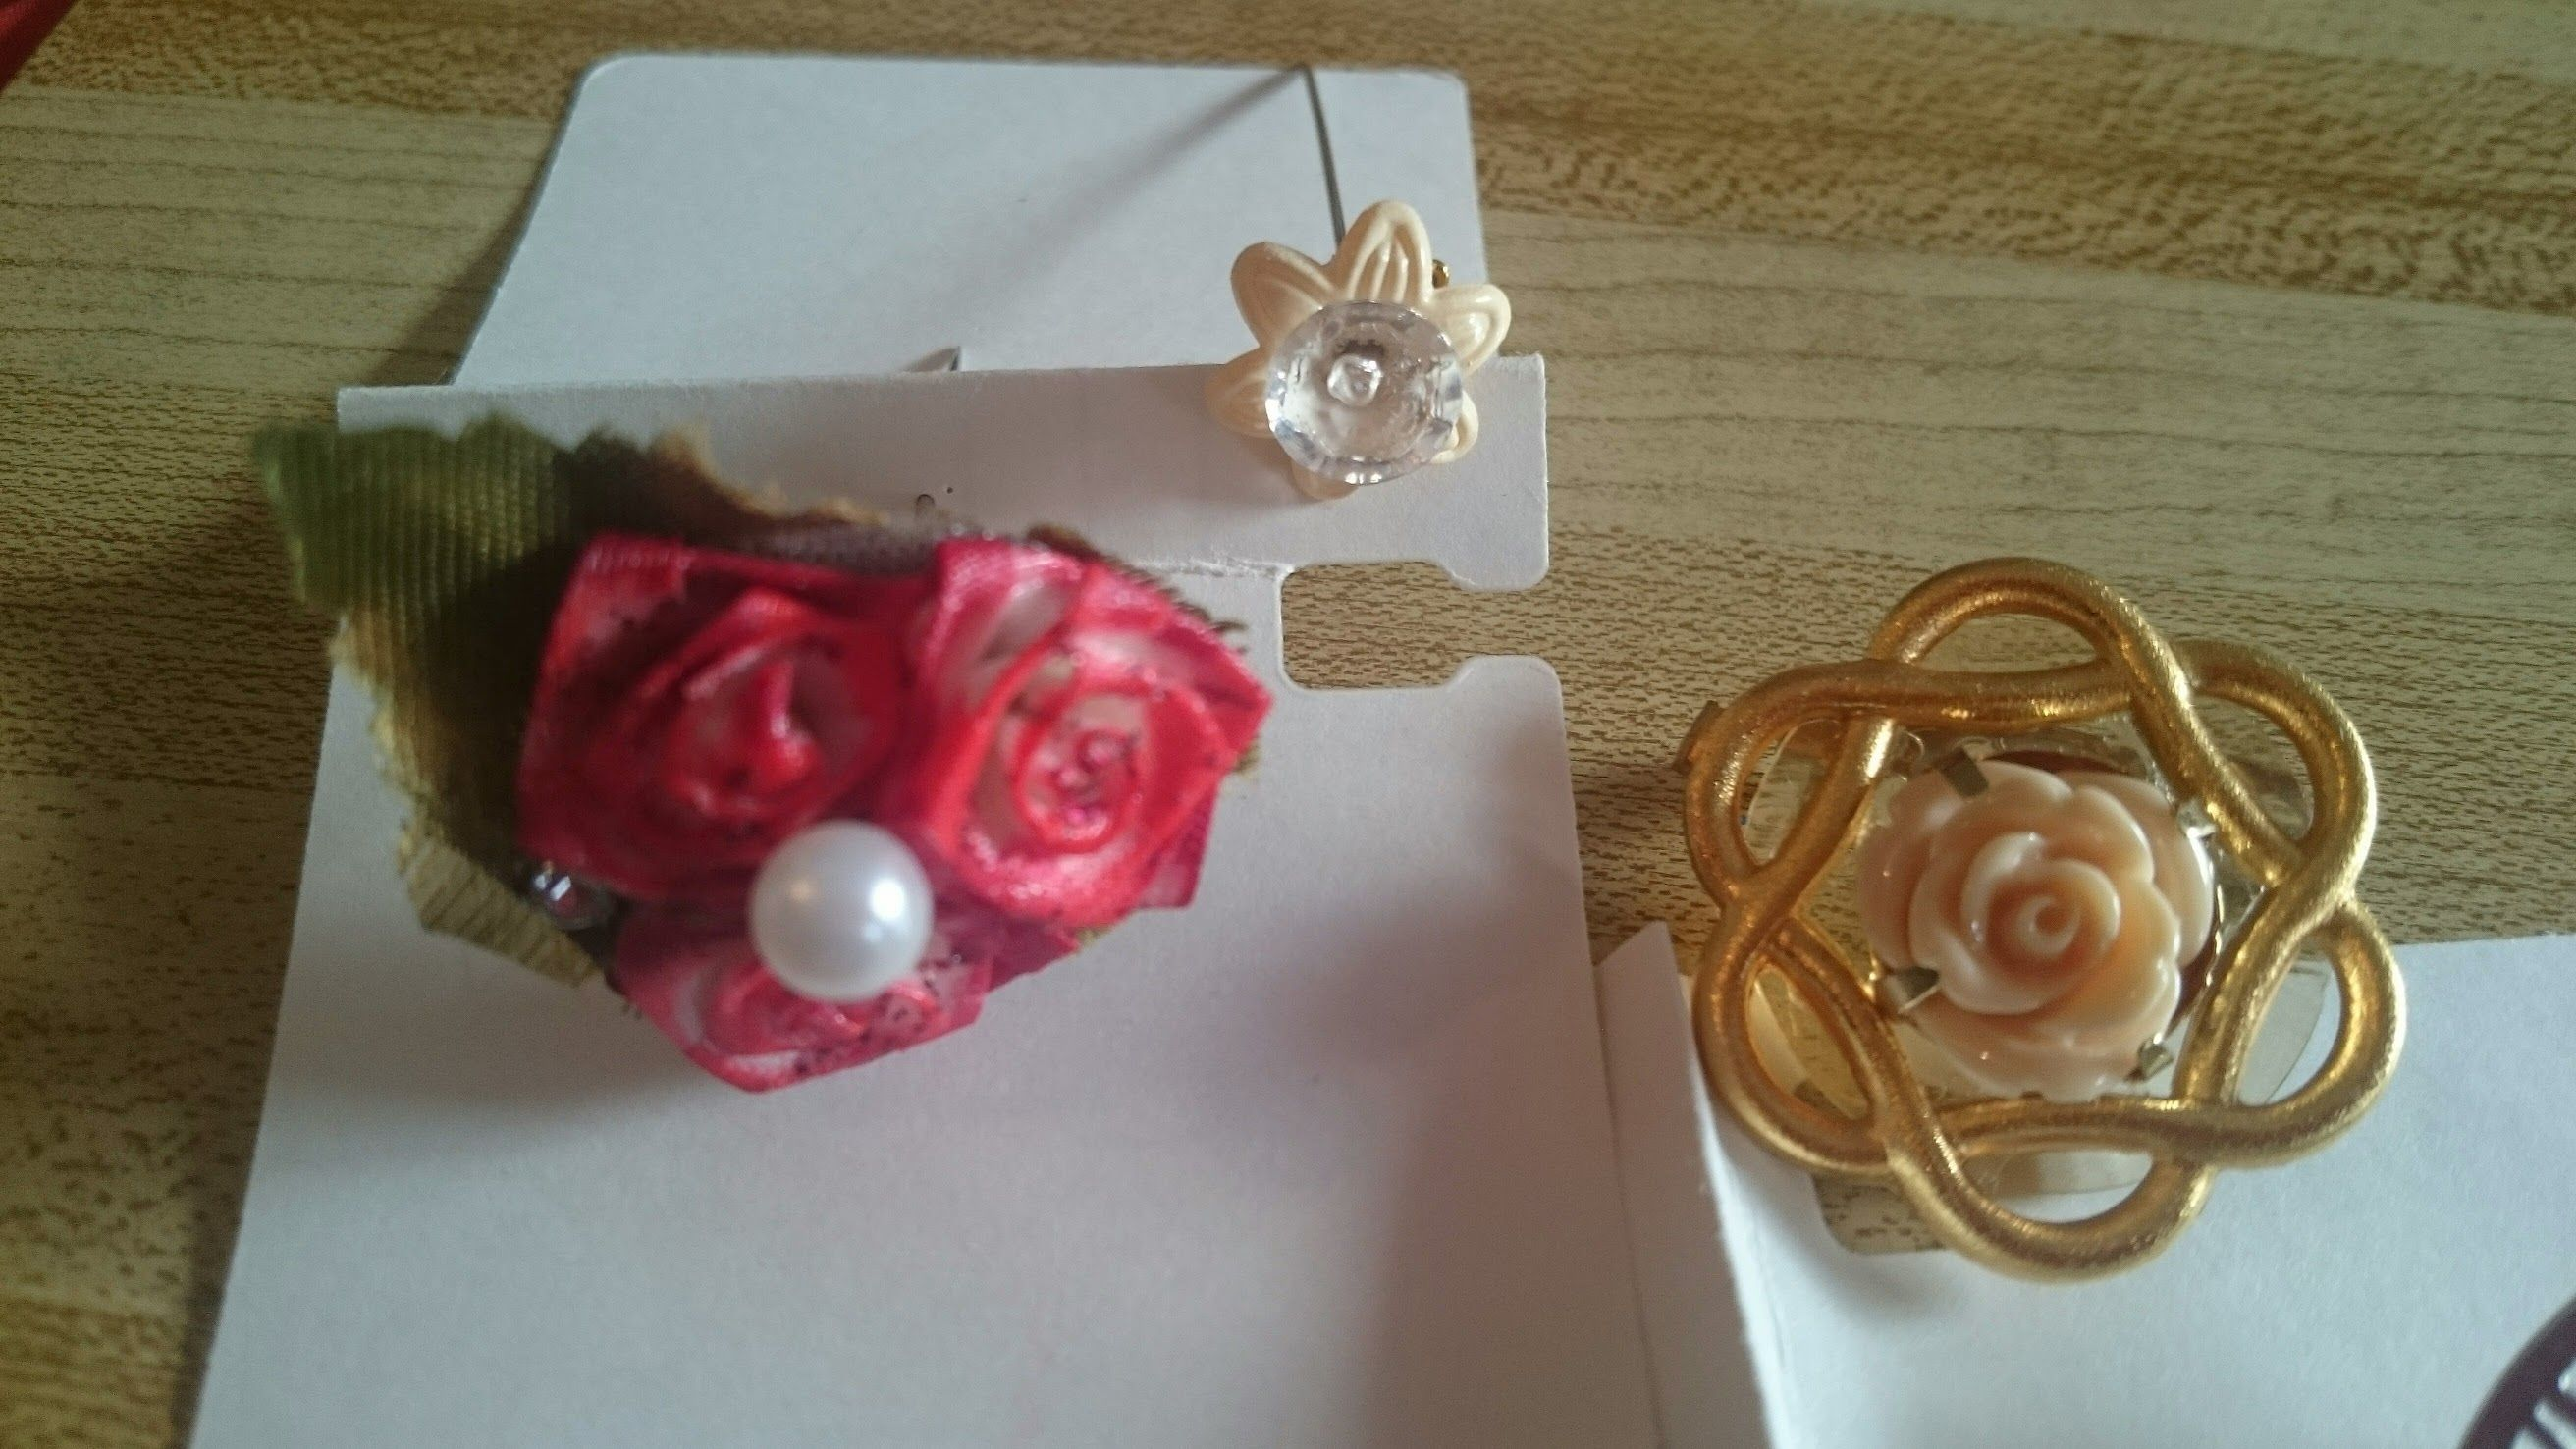 Handmade Floral Hijab pins and a brooch Sale designed and created by Sameya.